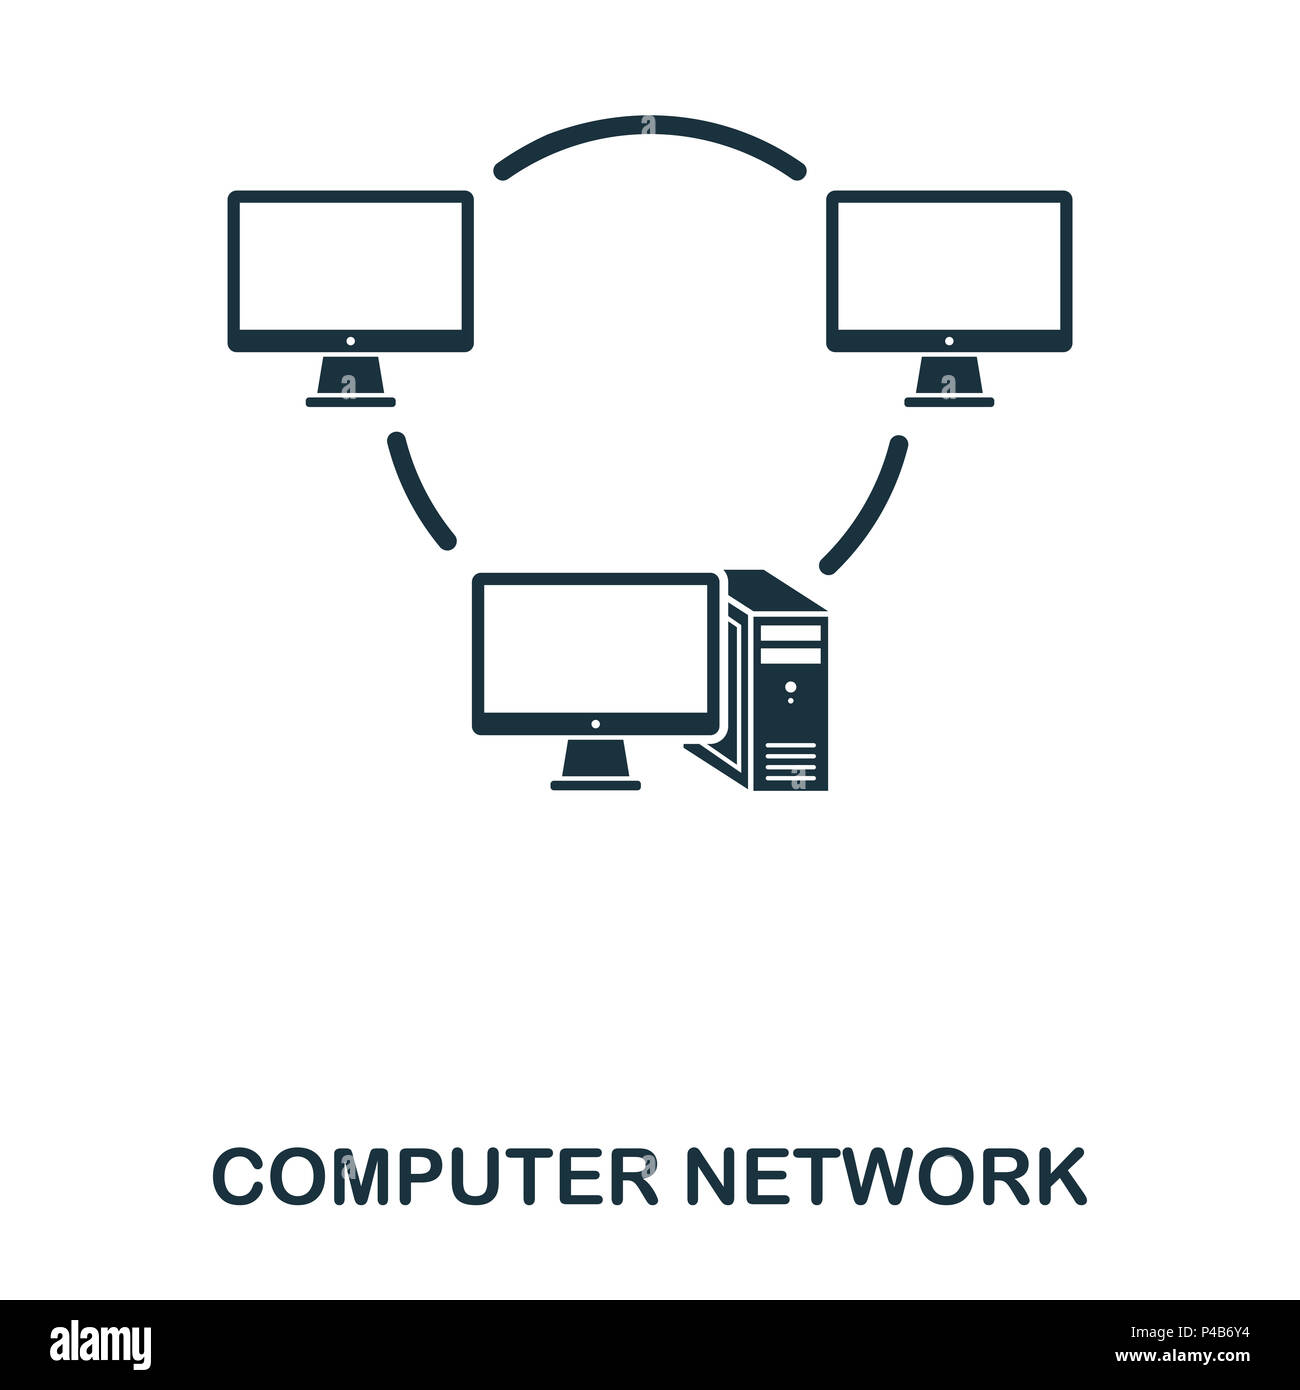 Computer Network icon. Line style icon design. UI. Illustration of computer network icon. Pictogram isolated on white. Ready to use in web design, apps, software, print. - Stock Image